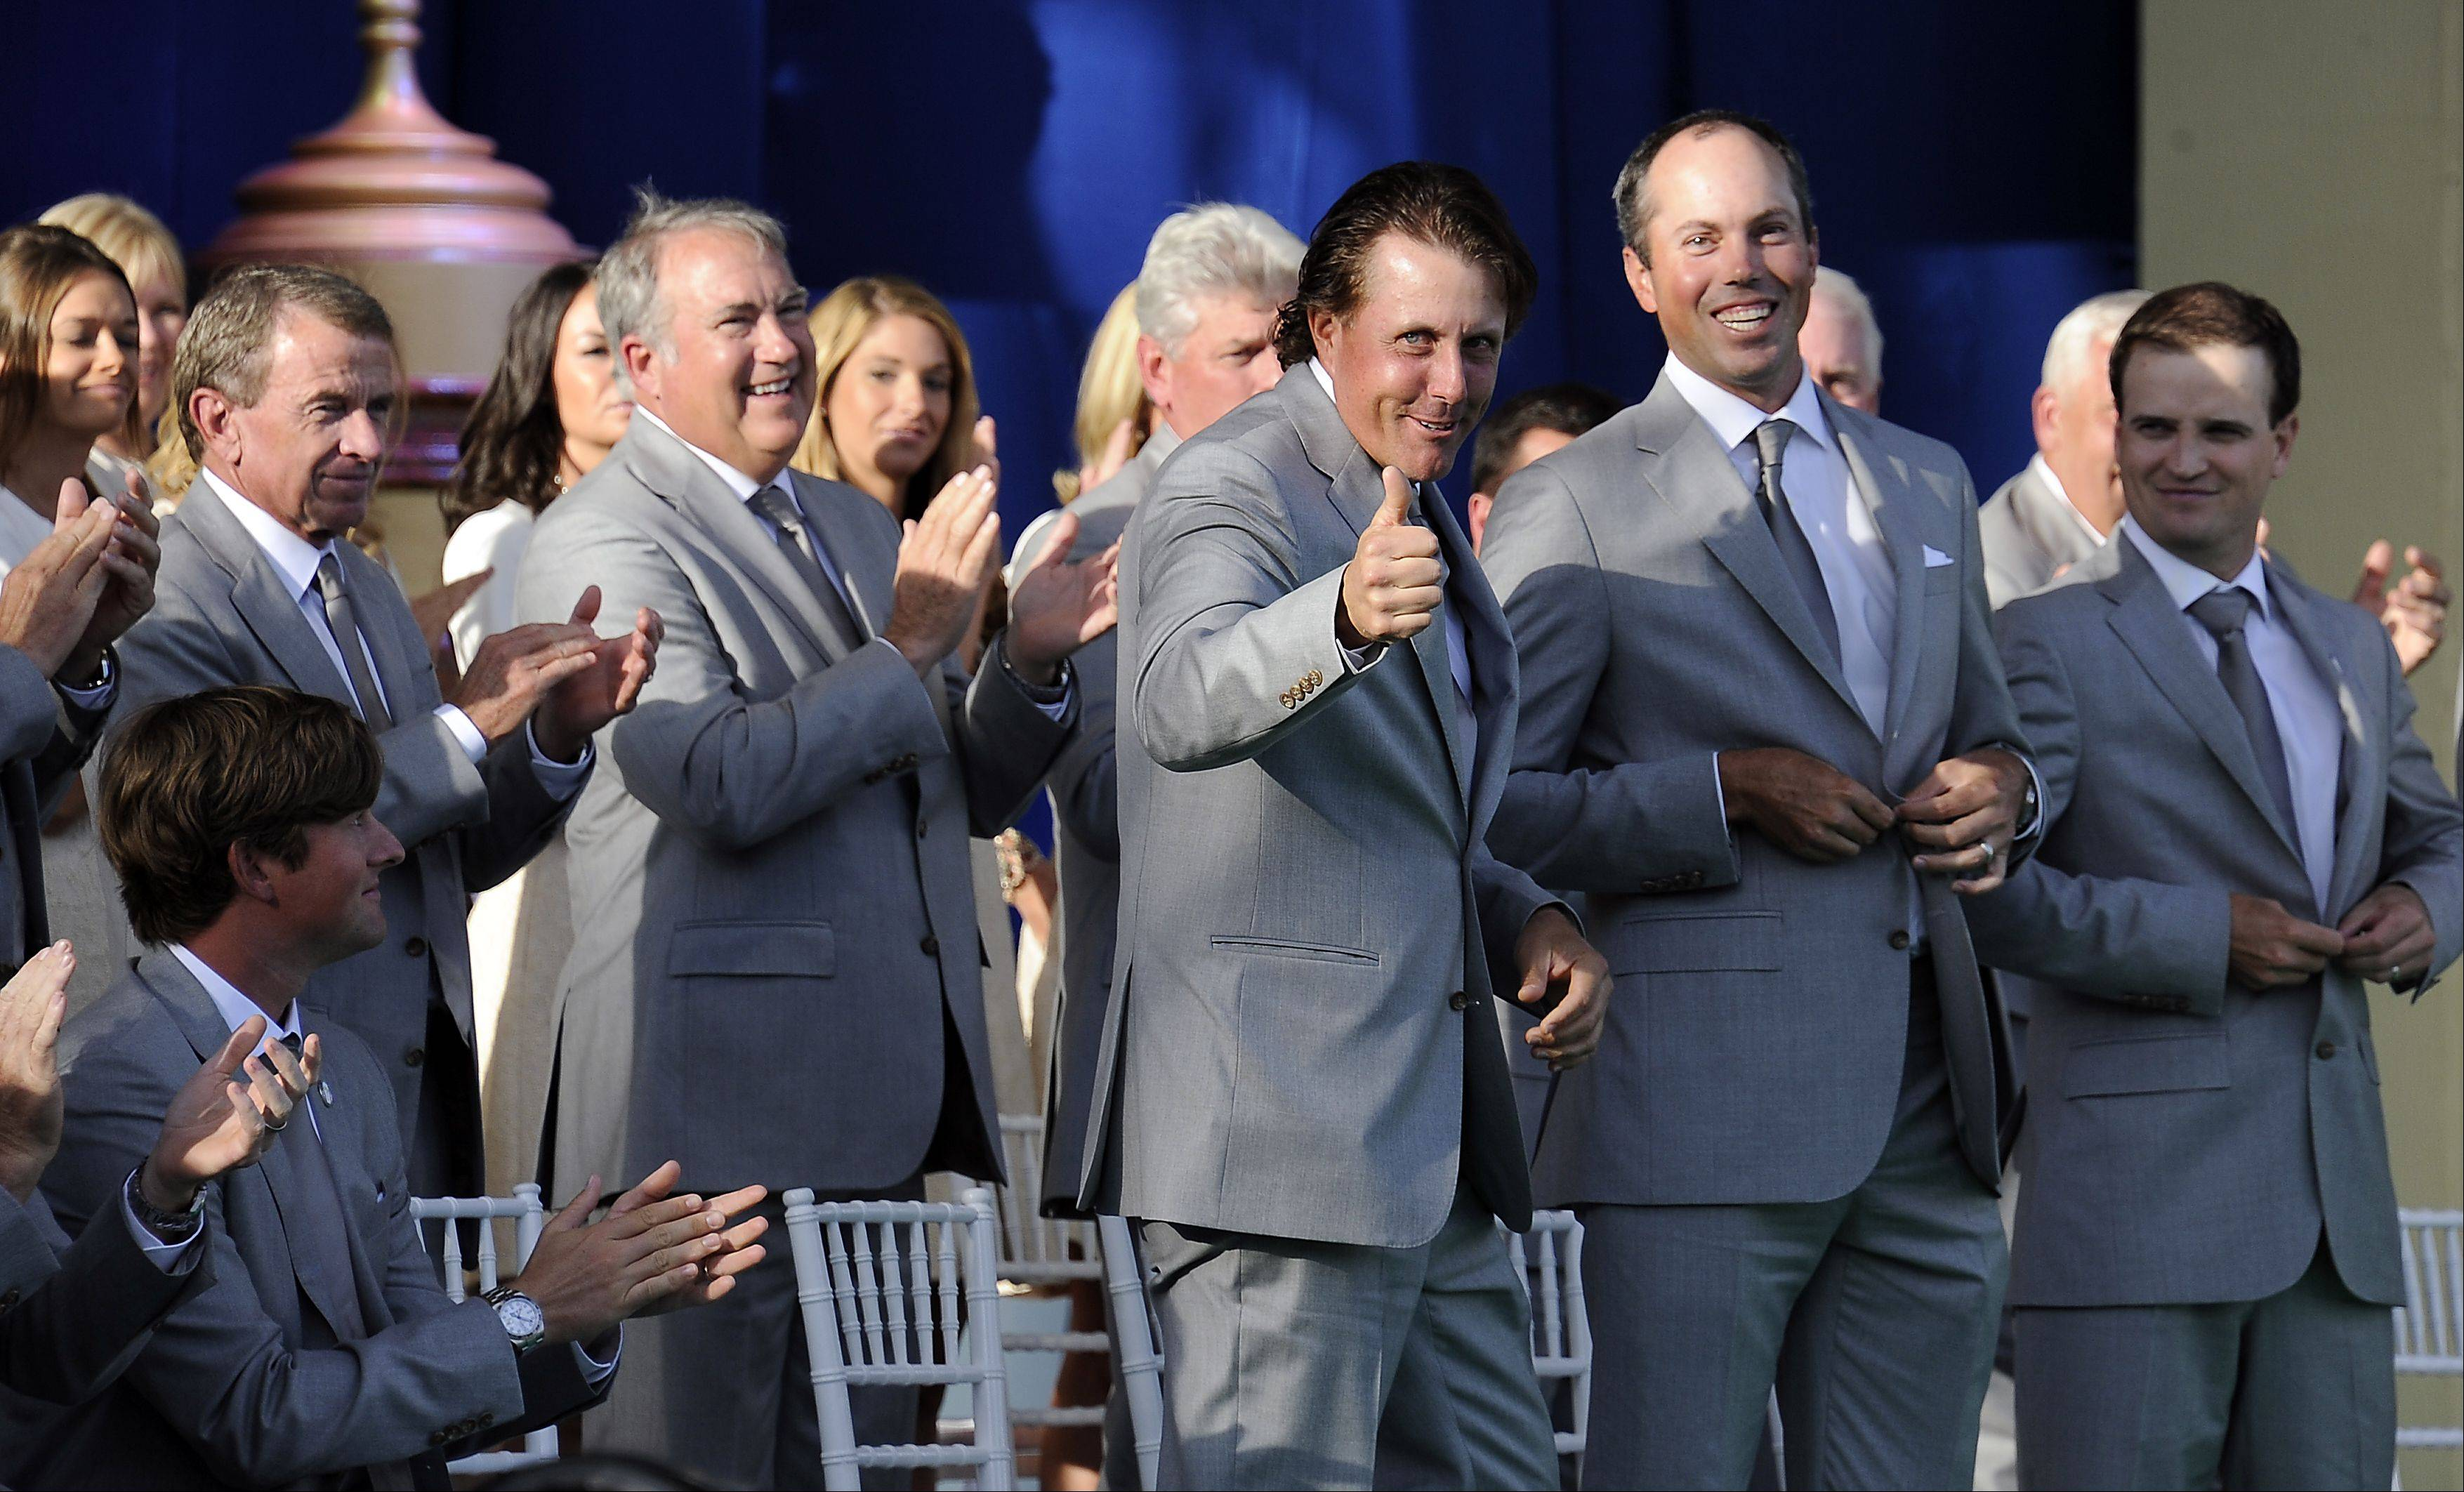 United States team member Phil Mickelson gives a thumbs up.